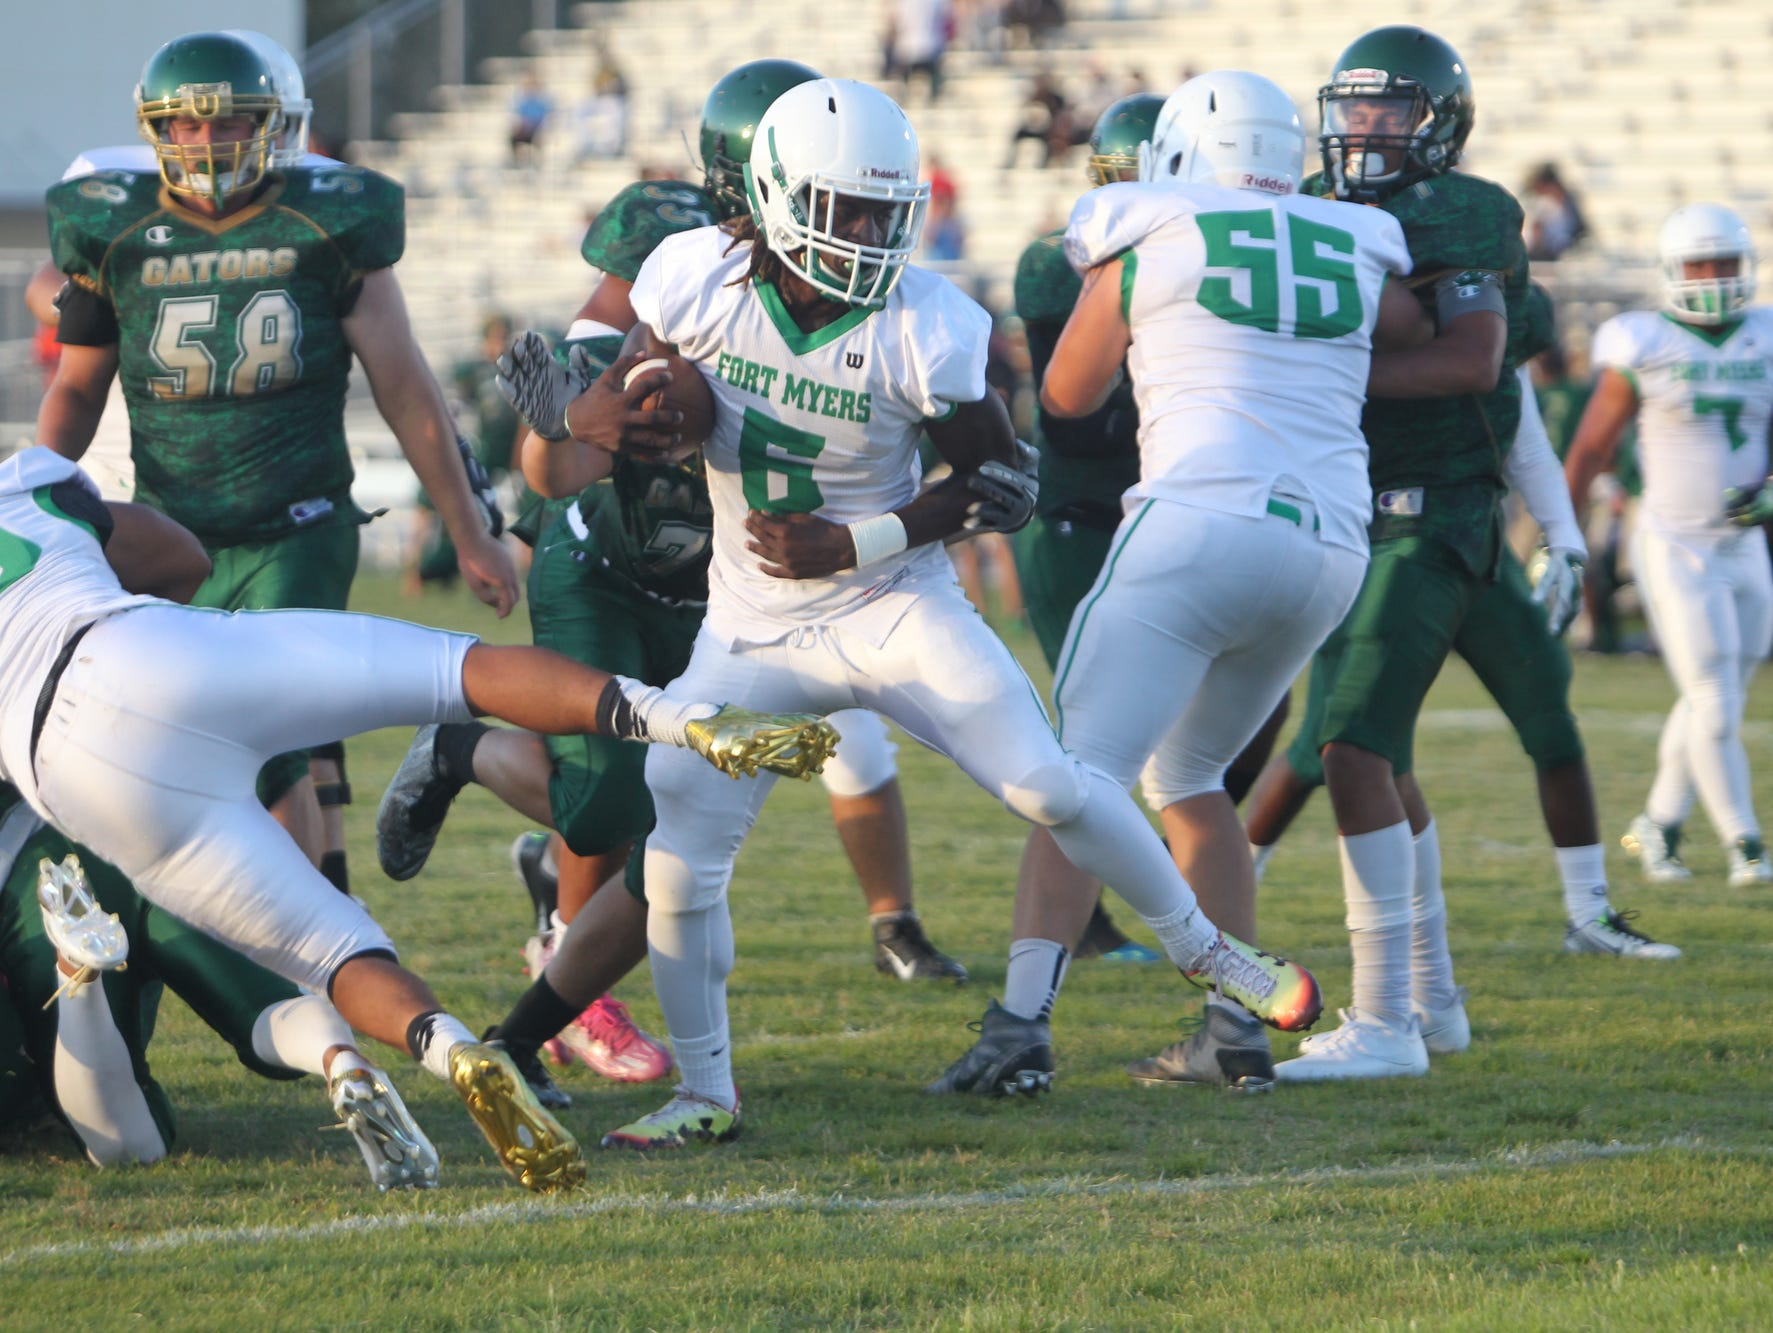 Darrian Felix and Fort Myers are among the favorites to win a Region 6A-3 title this season. The Green Wave opens at Palmetto Friday.